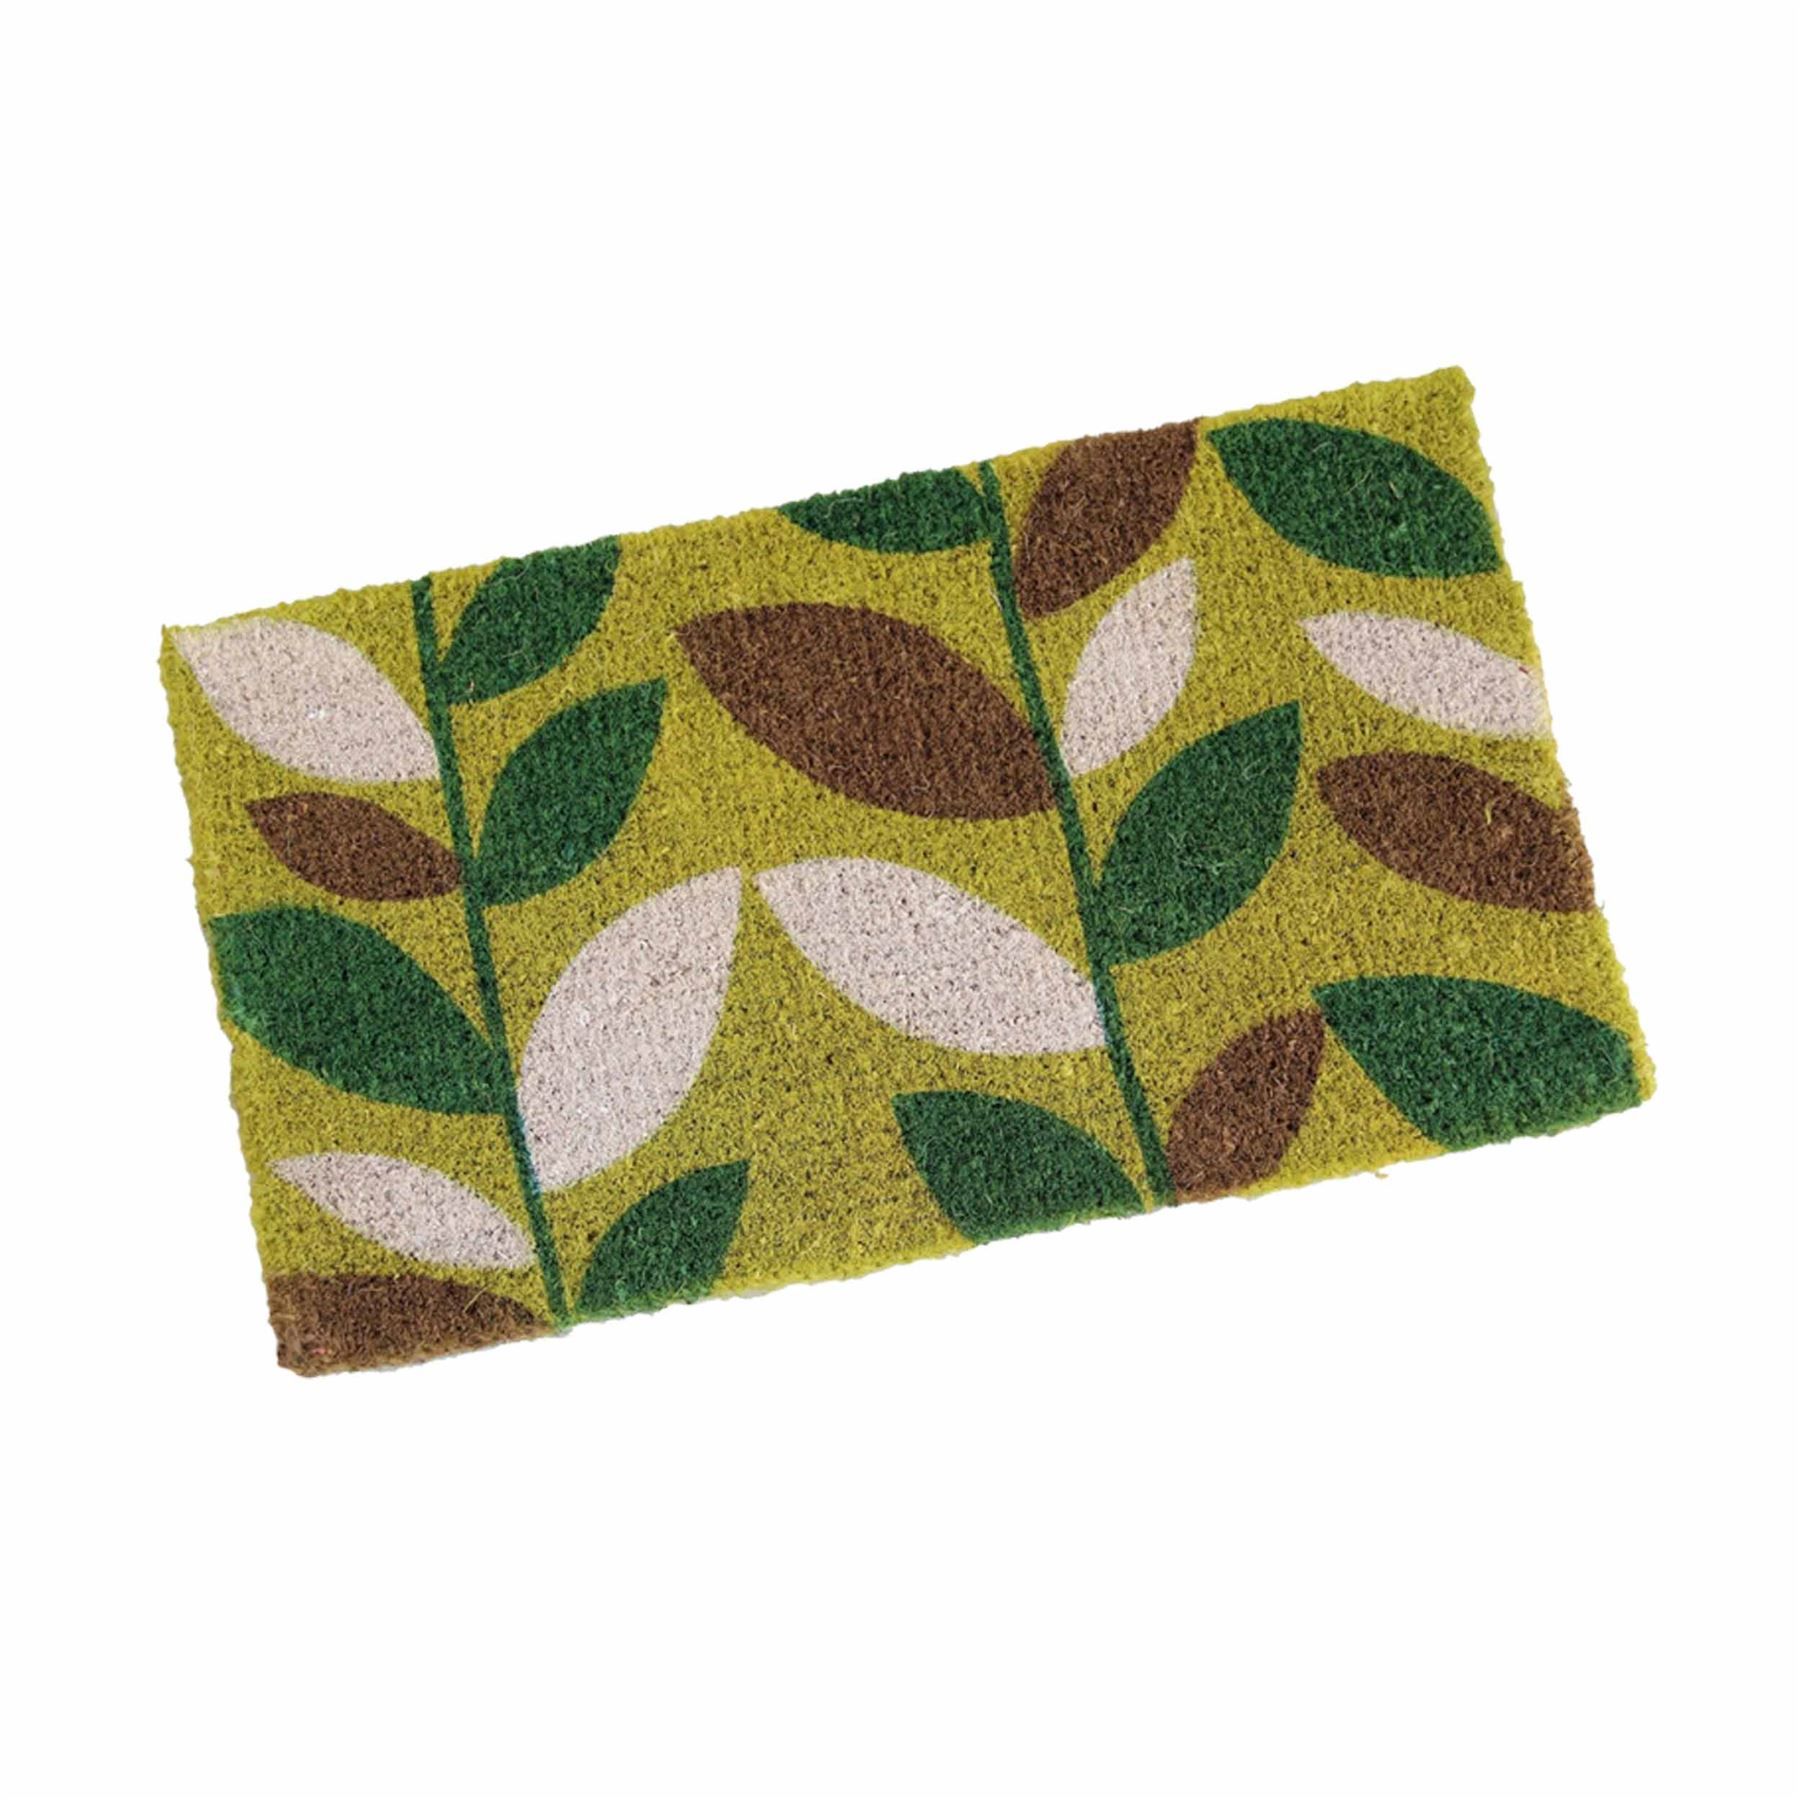 Novelty natural coir door mat indoor outdoor entrance doormats rug homescapes ebay - Novelty welcome mats ...